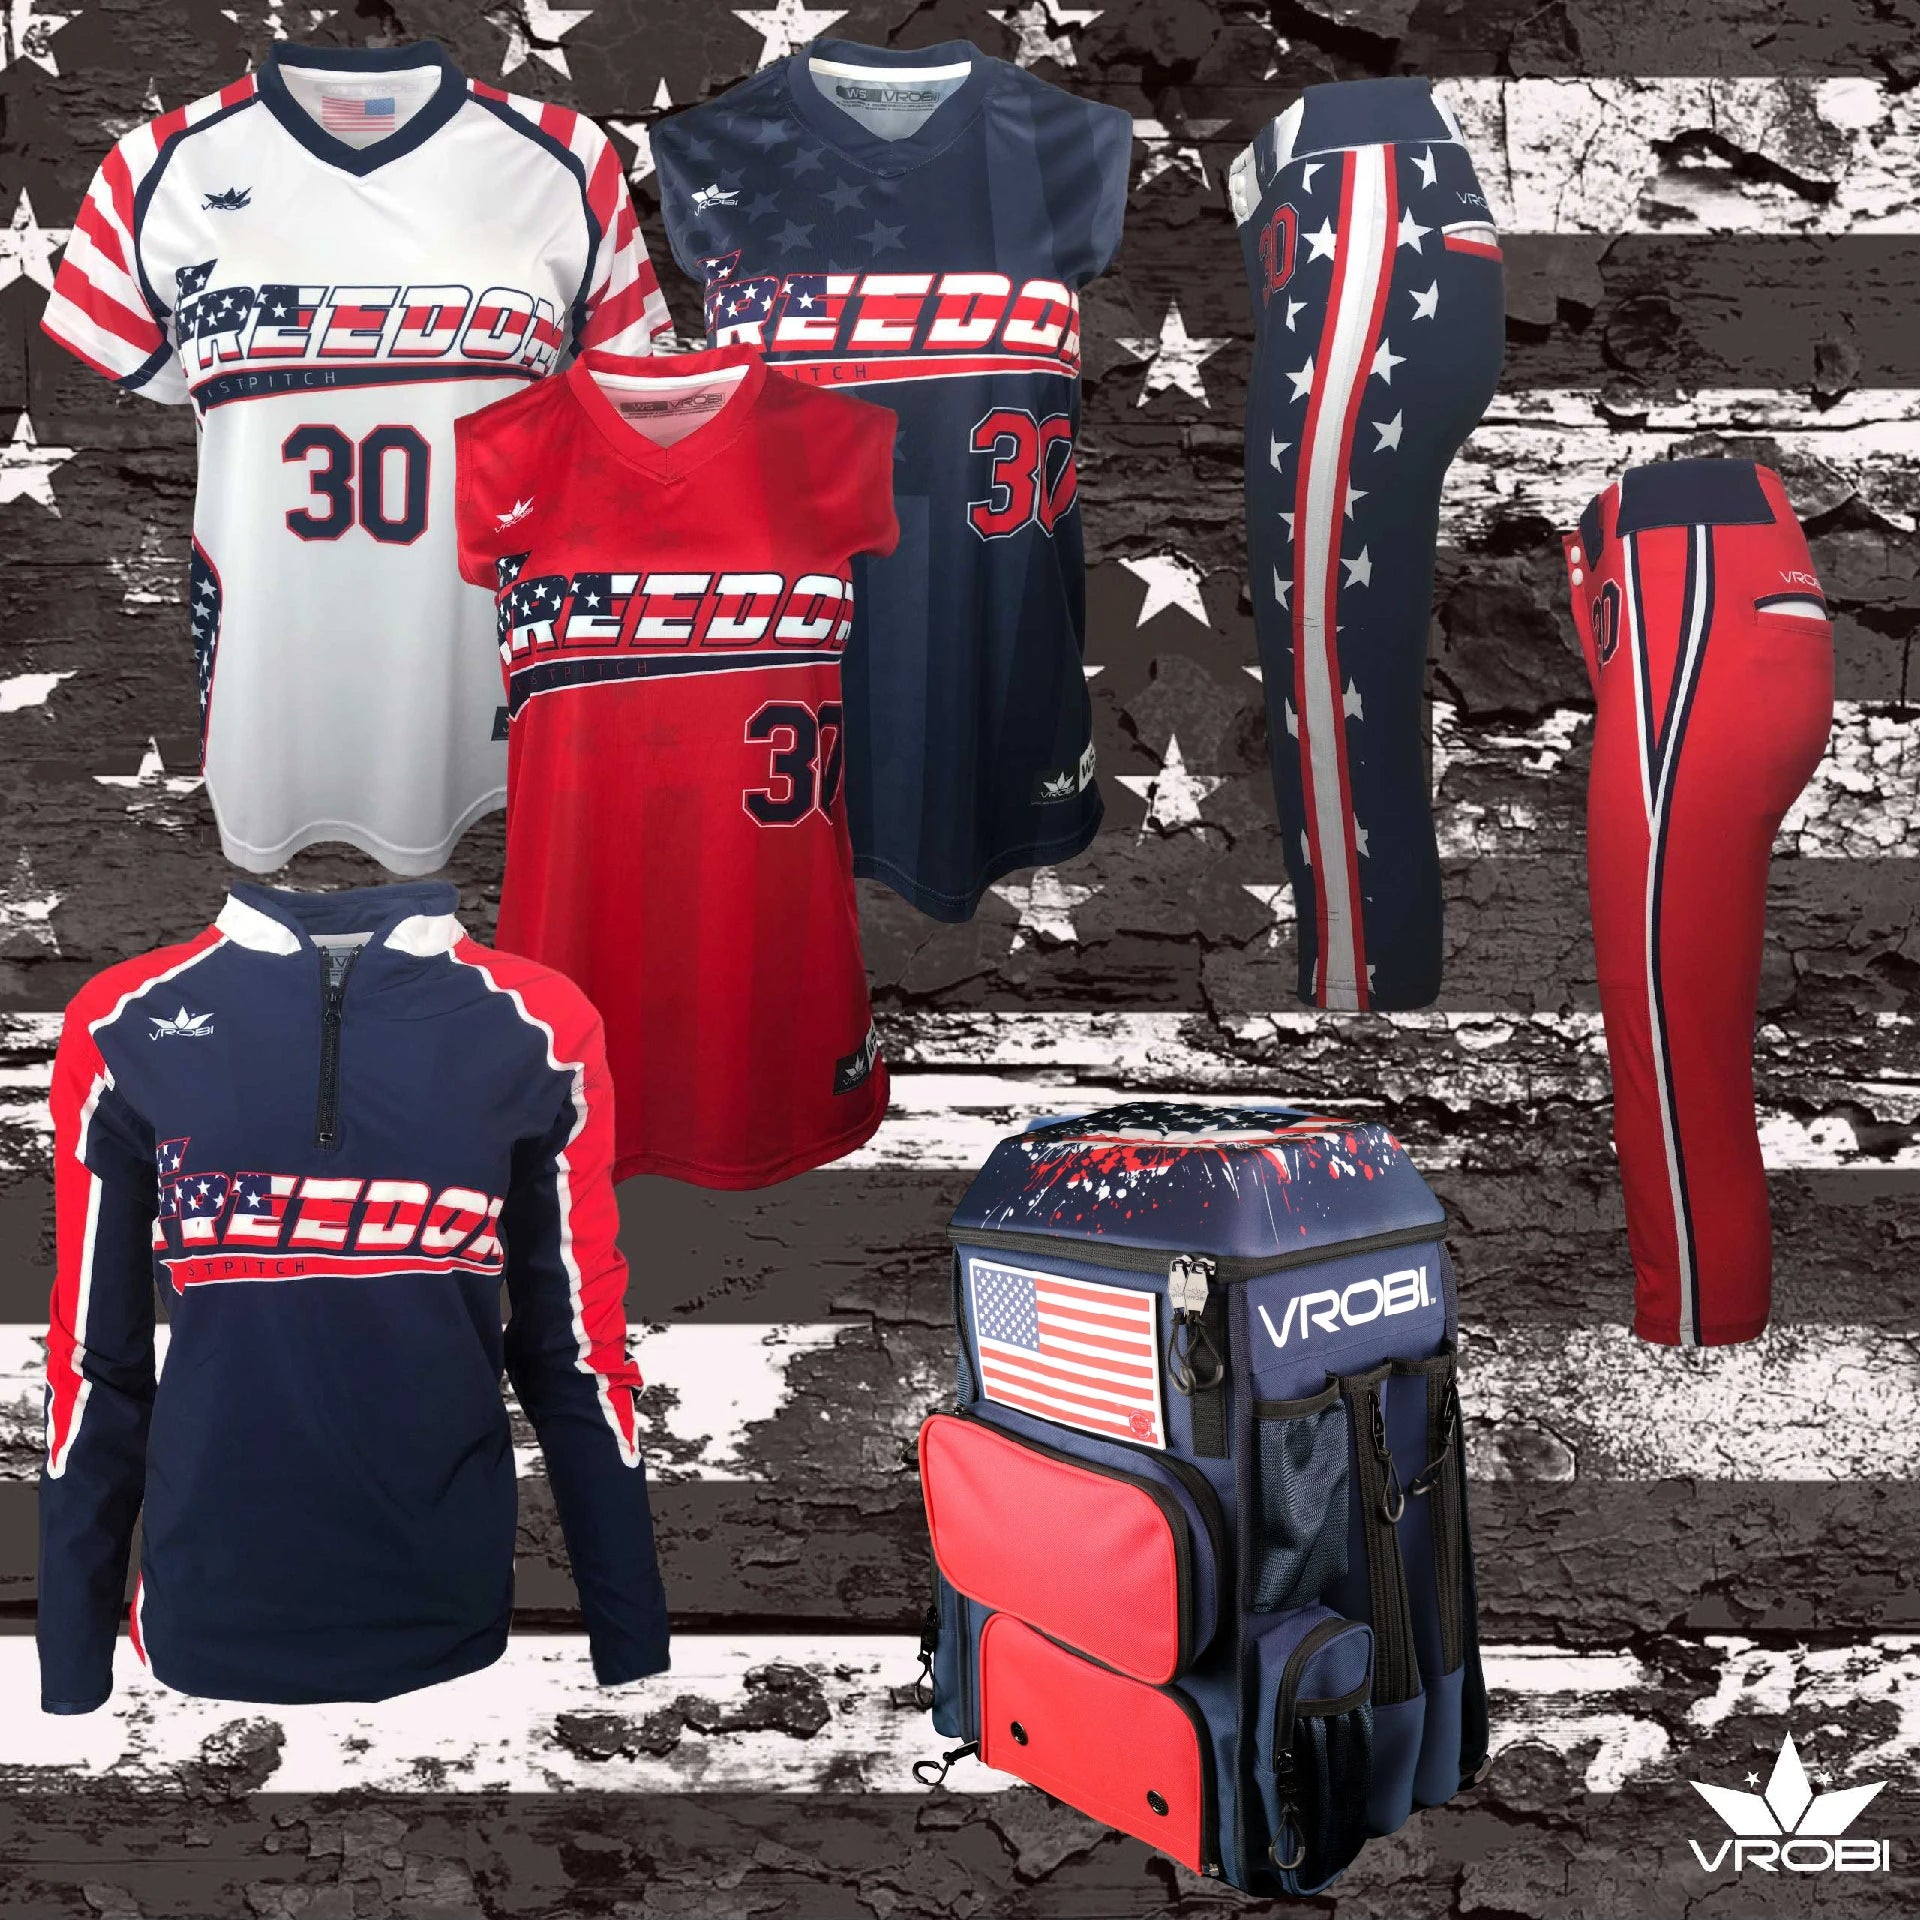 Platinum Package for Fastpitch Softball showing custom uniforms and Bat Pack